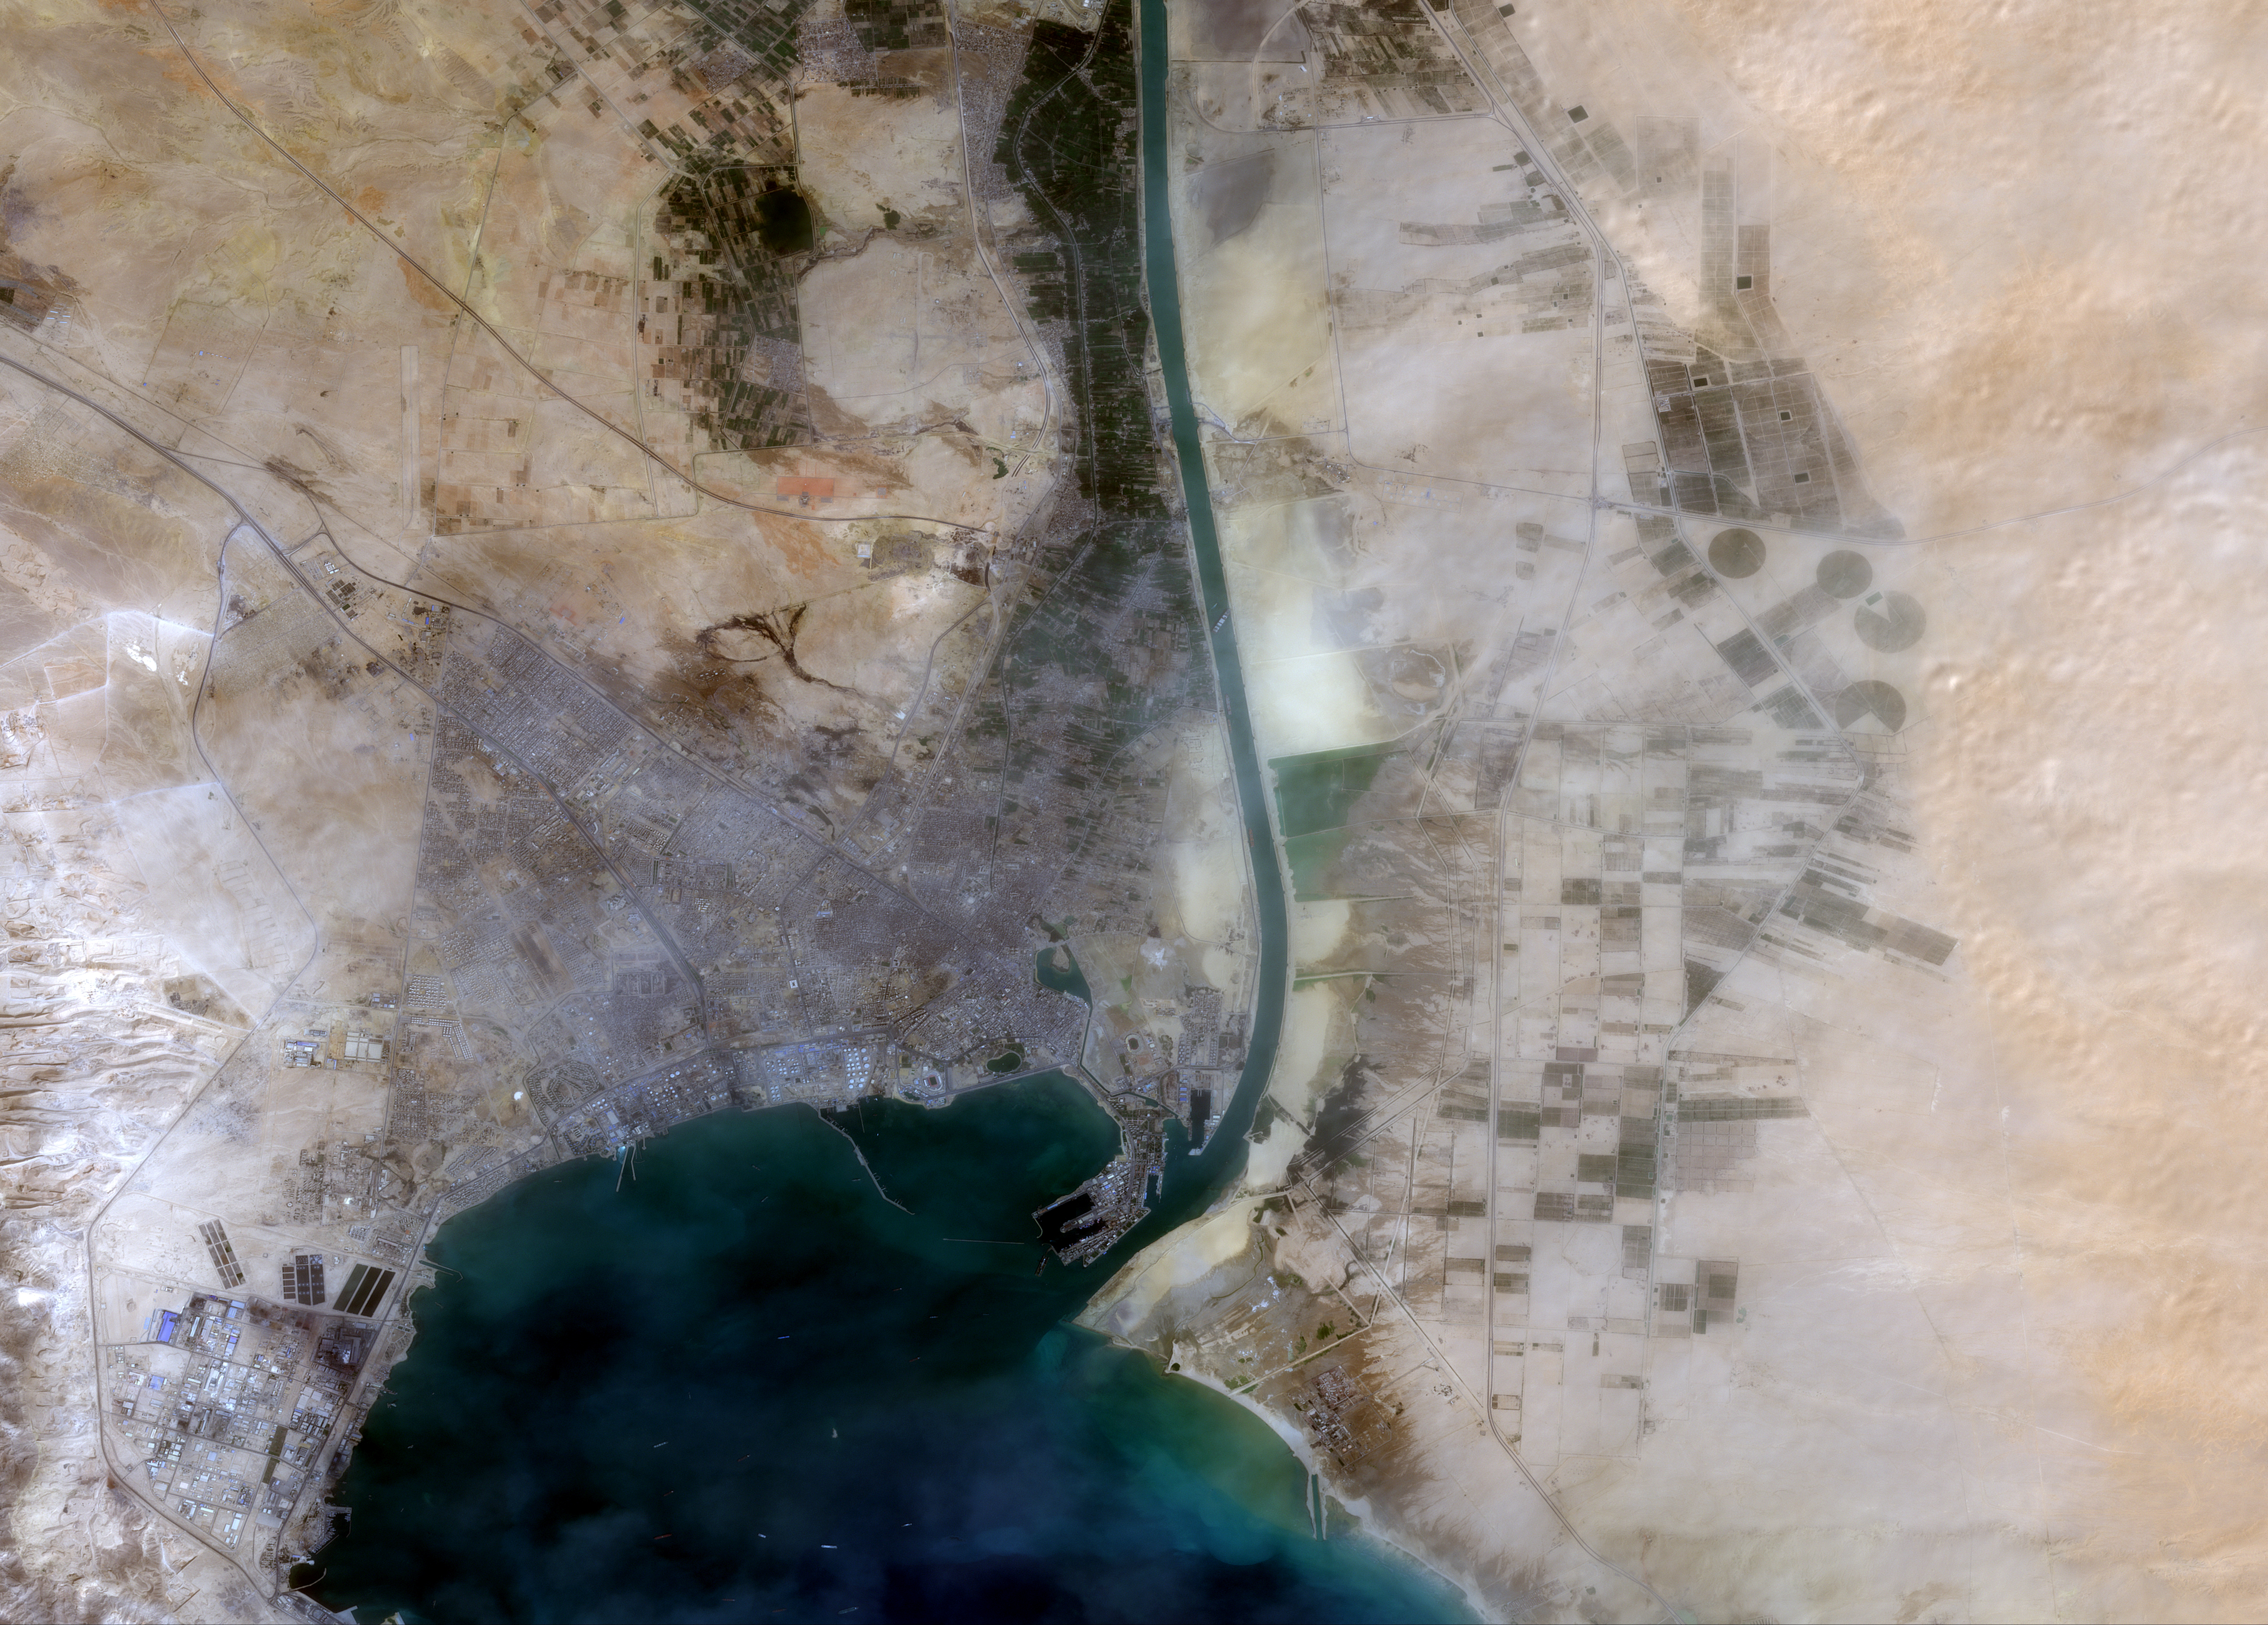 The 400-meter, 224,000-tonne Ever Given container ship, leased by Taiwan's Evergreen Marine Corp, is seen blocking the Suez Canal in this European Space Agency Copernicus Sentinel-2 satellite Image distributed courtesy of Maxar Technologies taken March 24, 2021. European Space Agency Copernicus Sentinel-2 Satellite Image /via Maxar Technologies/Handout via REUTERS